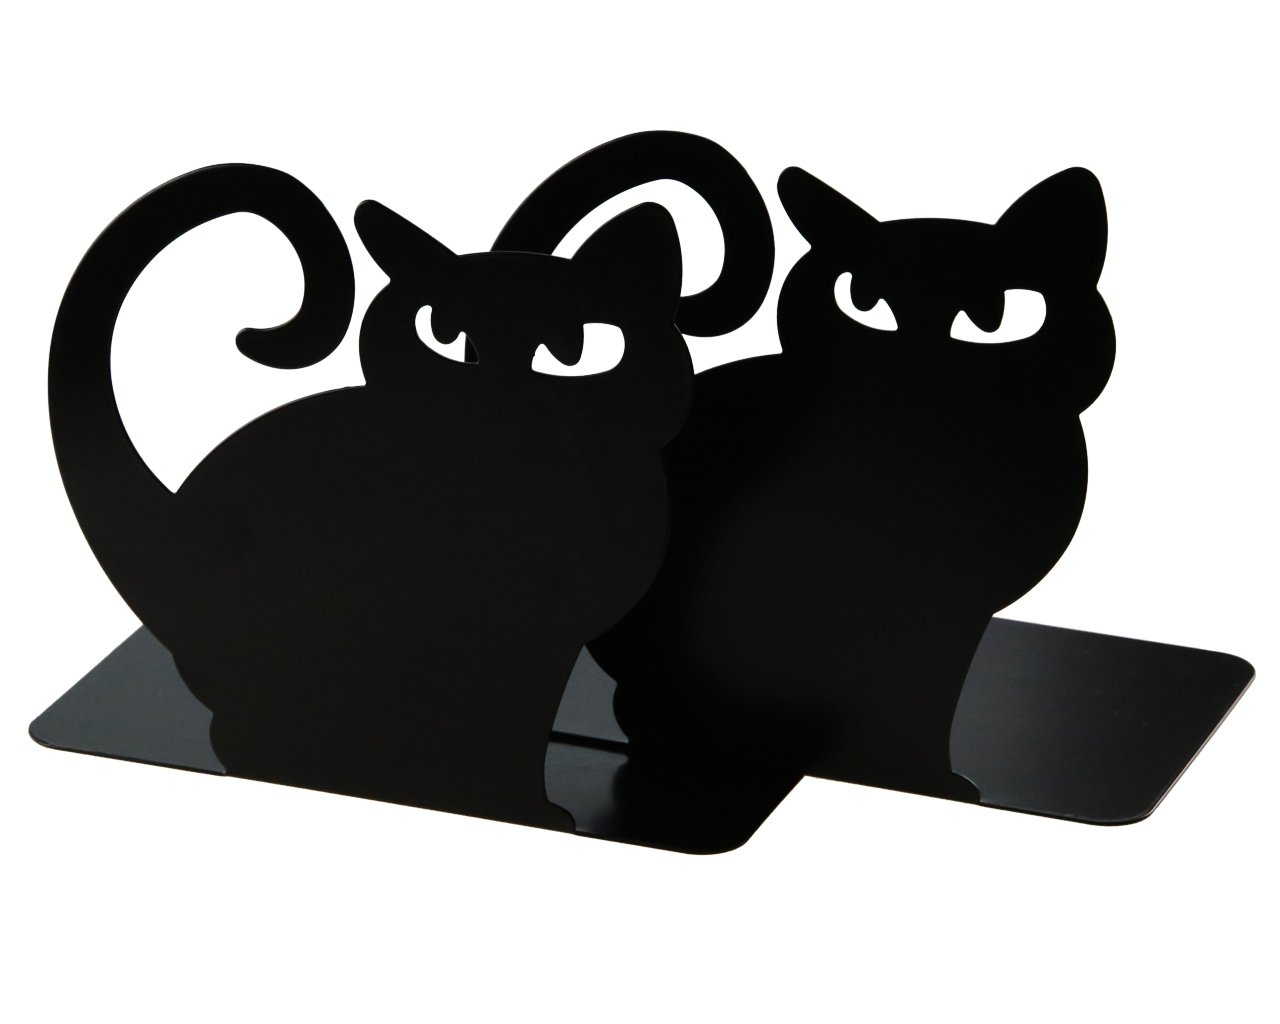 Cute Vivid Lovely Persian Cat Book Organizer Metal Bookends For Kids School Library Desk Study Home Office Decoration Gift (Black) by Apol (Image #2)